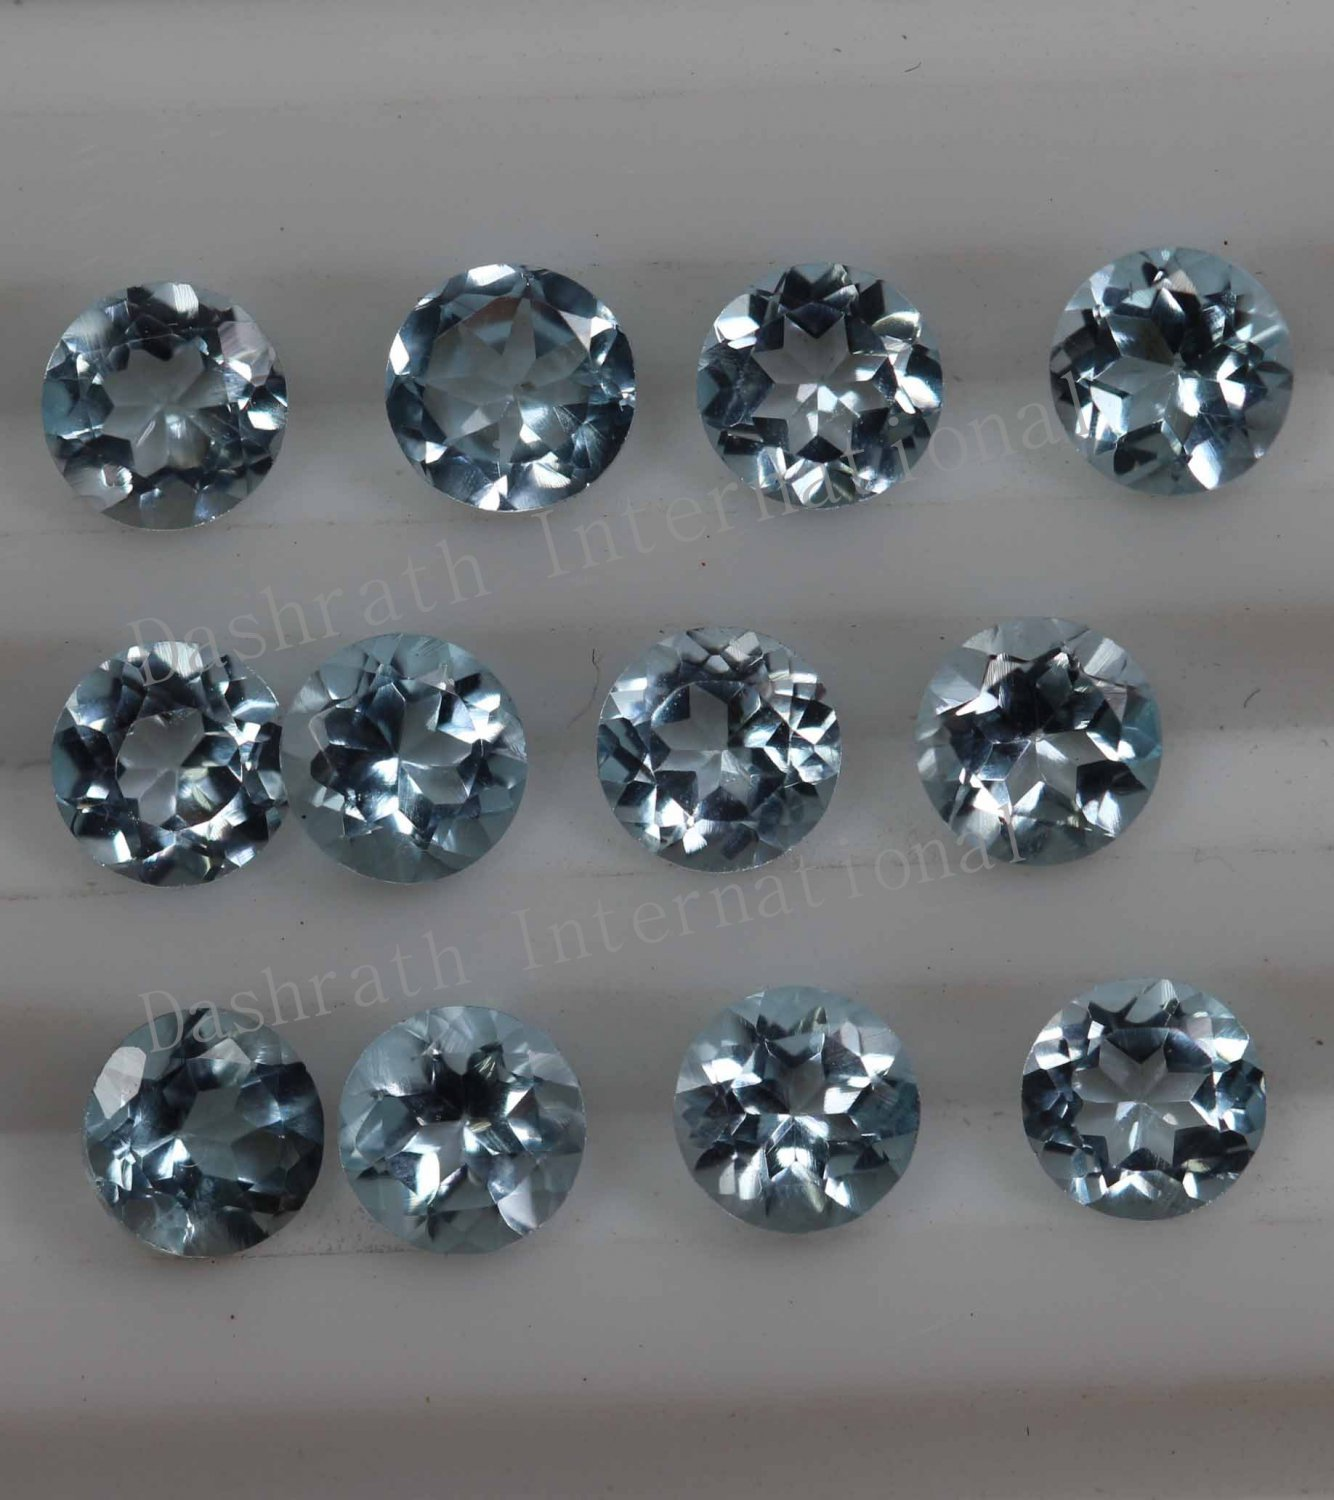 5mmNatural Sky Blue Topaz Faceted Cut Round 50 Pieces Lot Blue Color  Top Quality Loose Gemstone